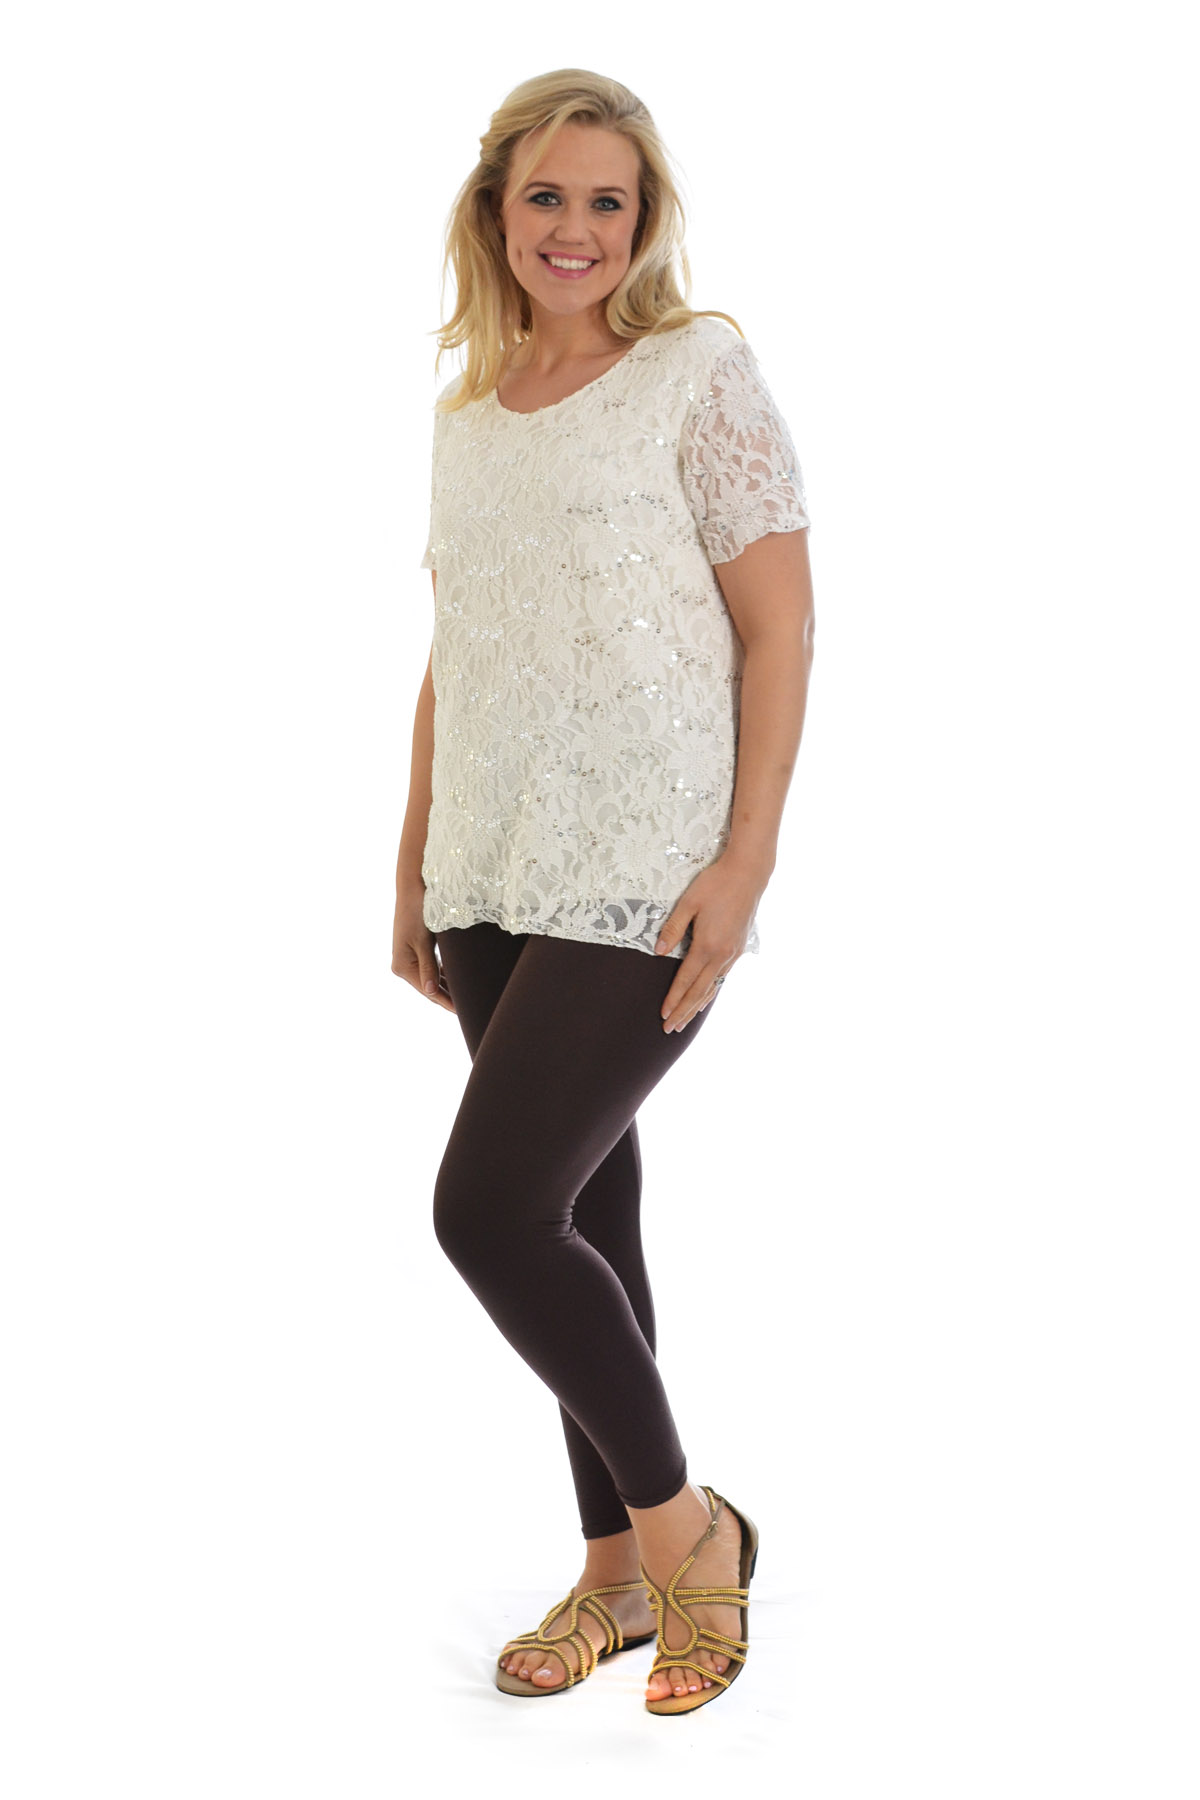 From cozy plus size cardigans and comfy plus size sweaters to top rated plus size graphic tees and plus size pretty peasant tops, our tops come in a variety of colors, styles, sizes à perfect for outfitting casual weekends, morning work meetings and everything in between.